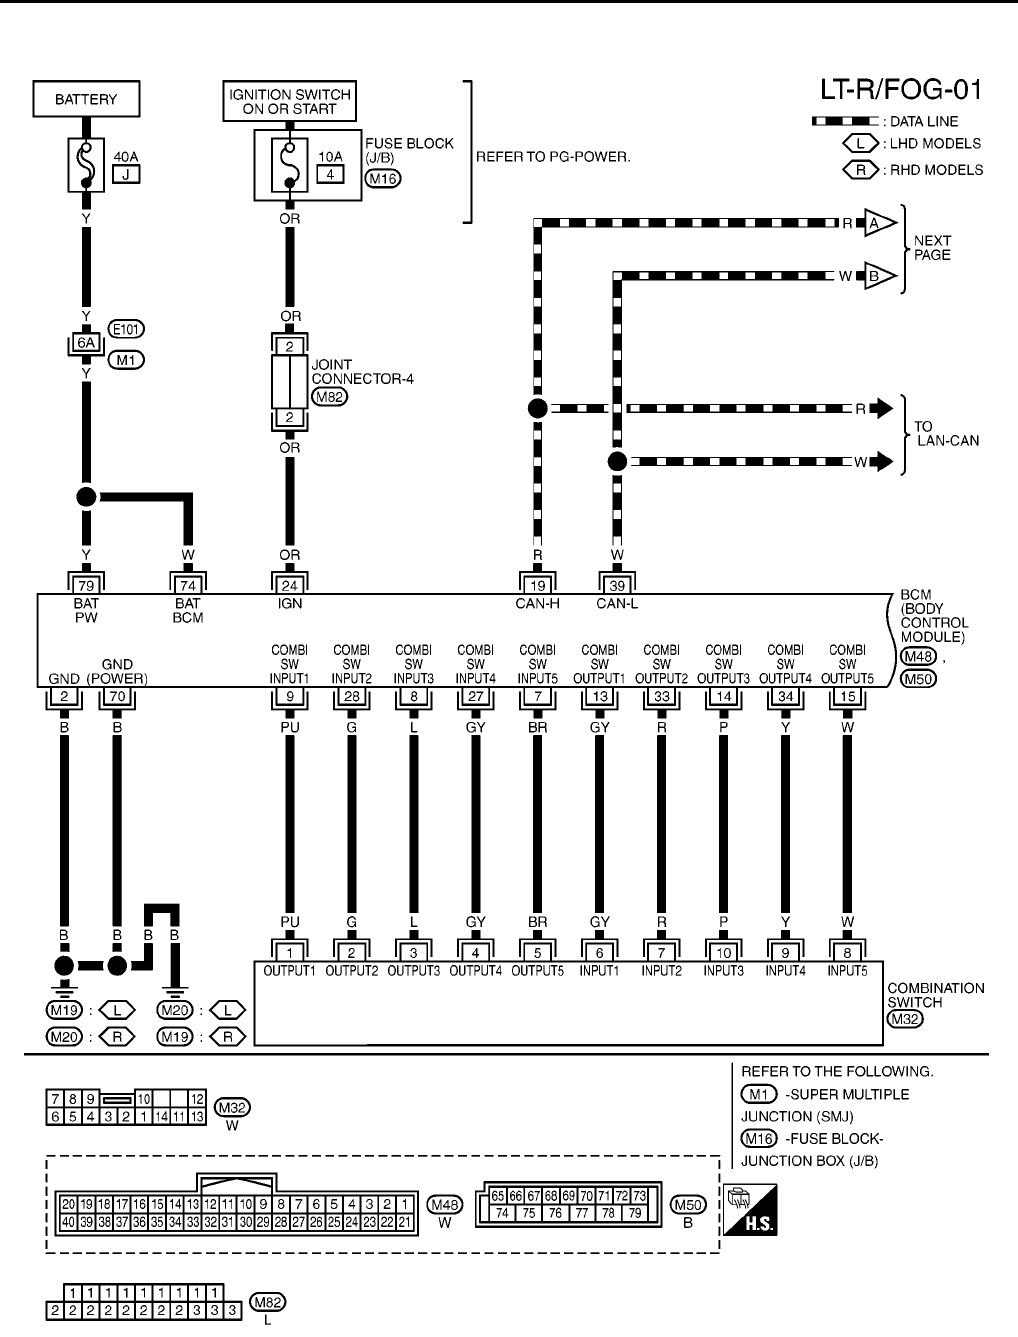 nissan micra wiring diagrams 2003 2005 23 pdf rh manuals co nissan micra wiring diagram k12 nissan micra wiring diagram pdf